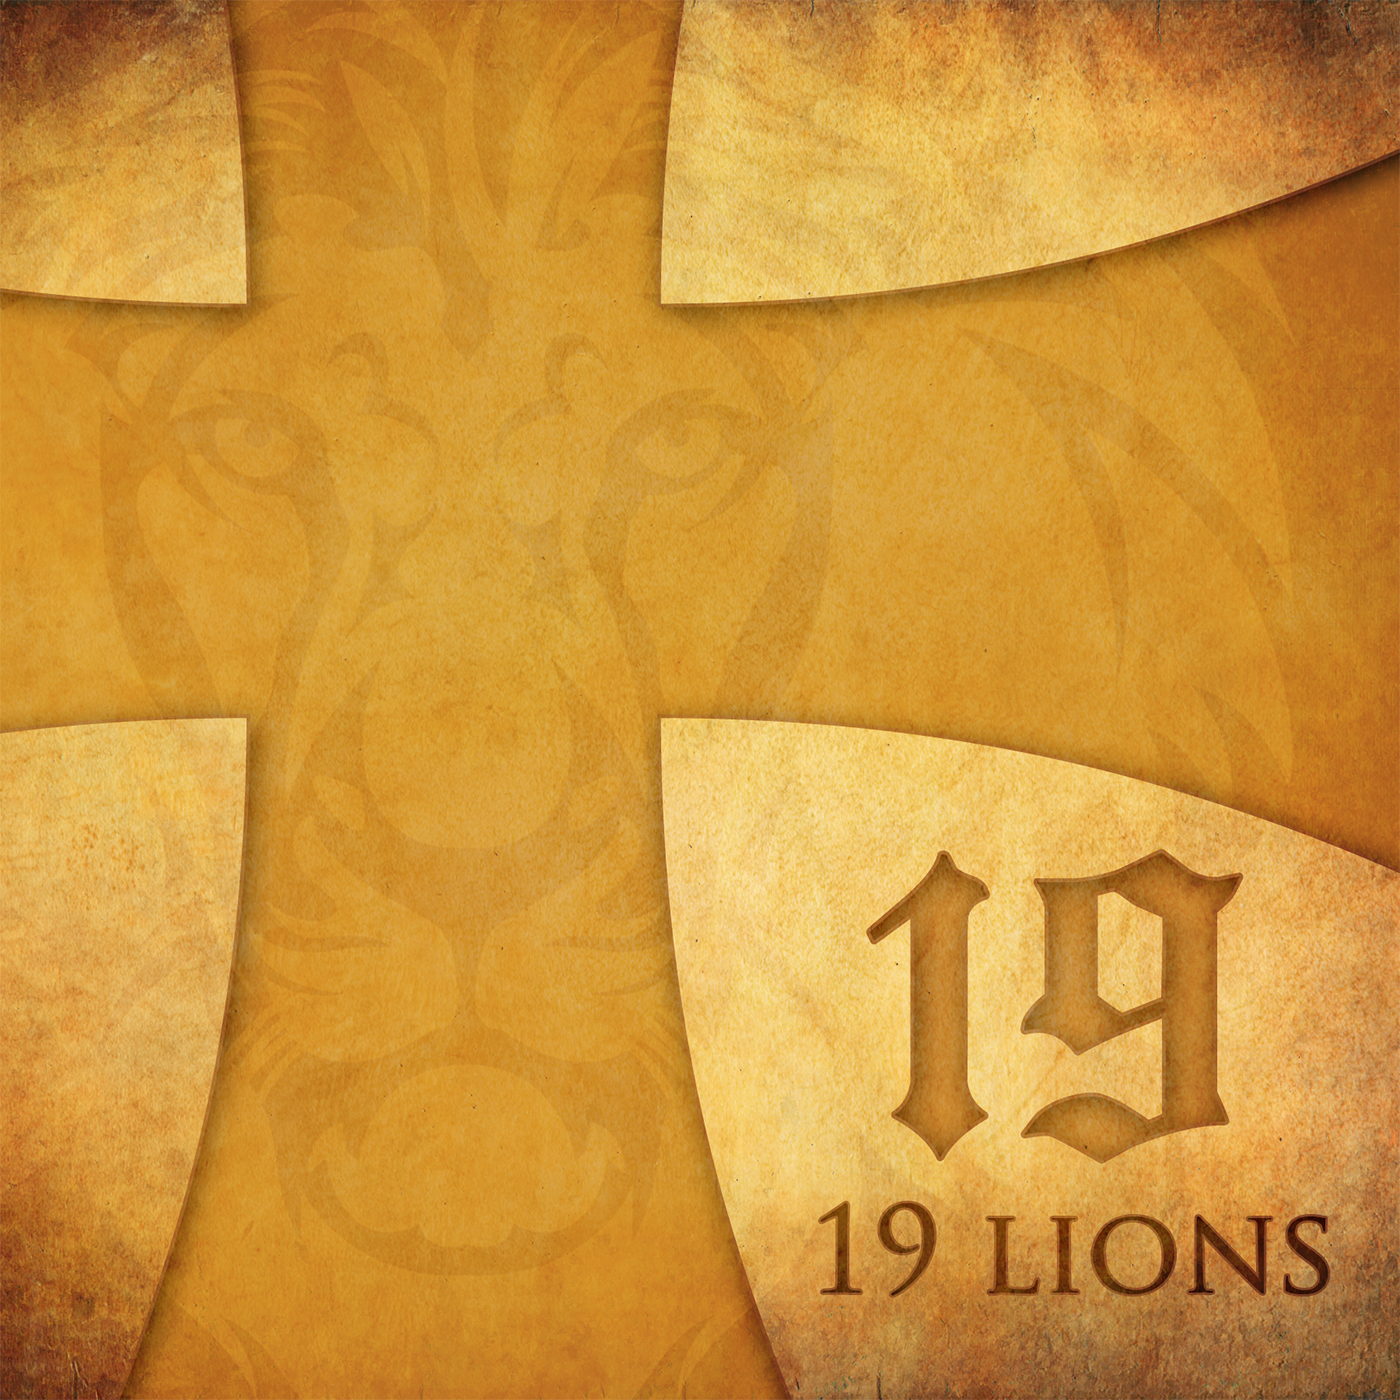 19LionsCover1400by1400_1